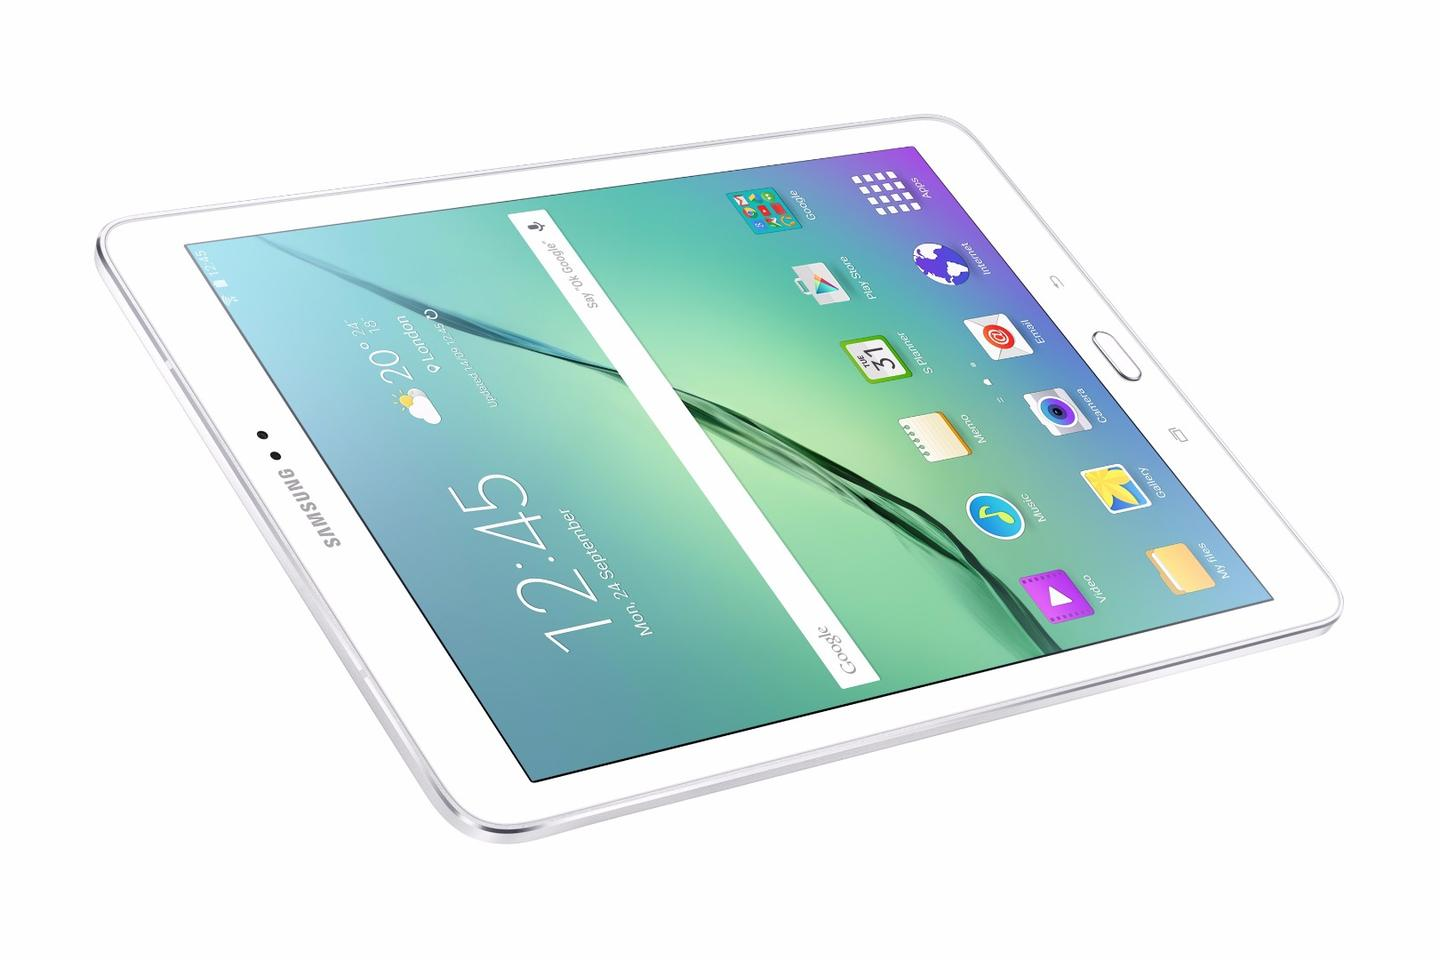 The Galaxy Tab S2 will come in 9.7-inch and 8-inch display options